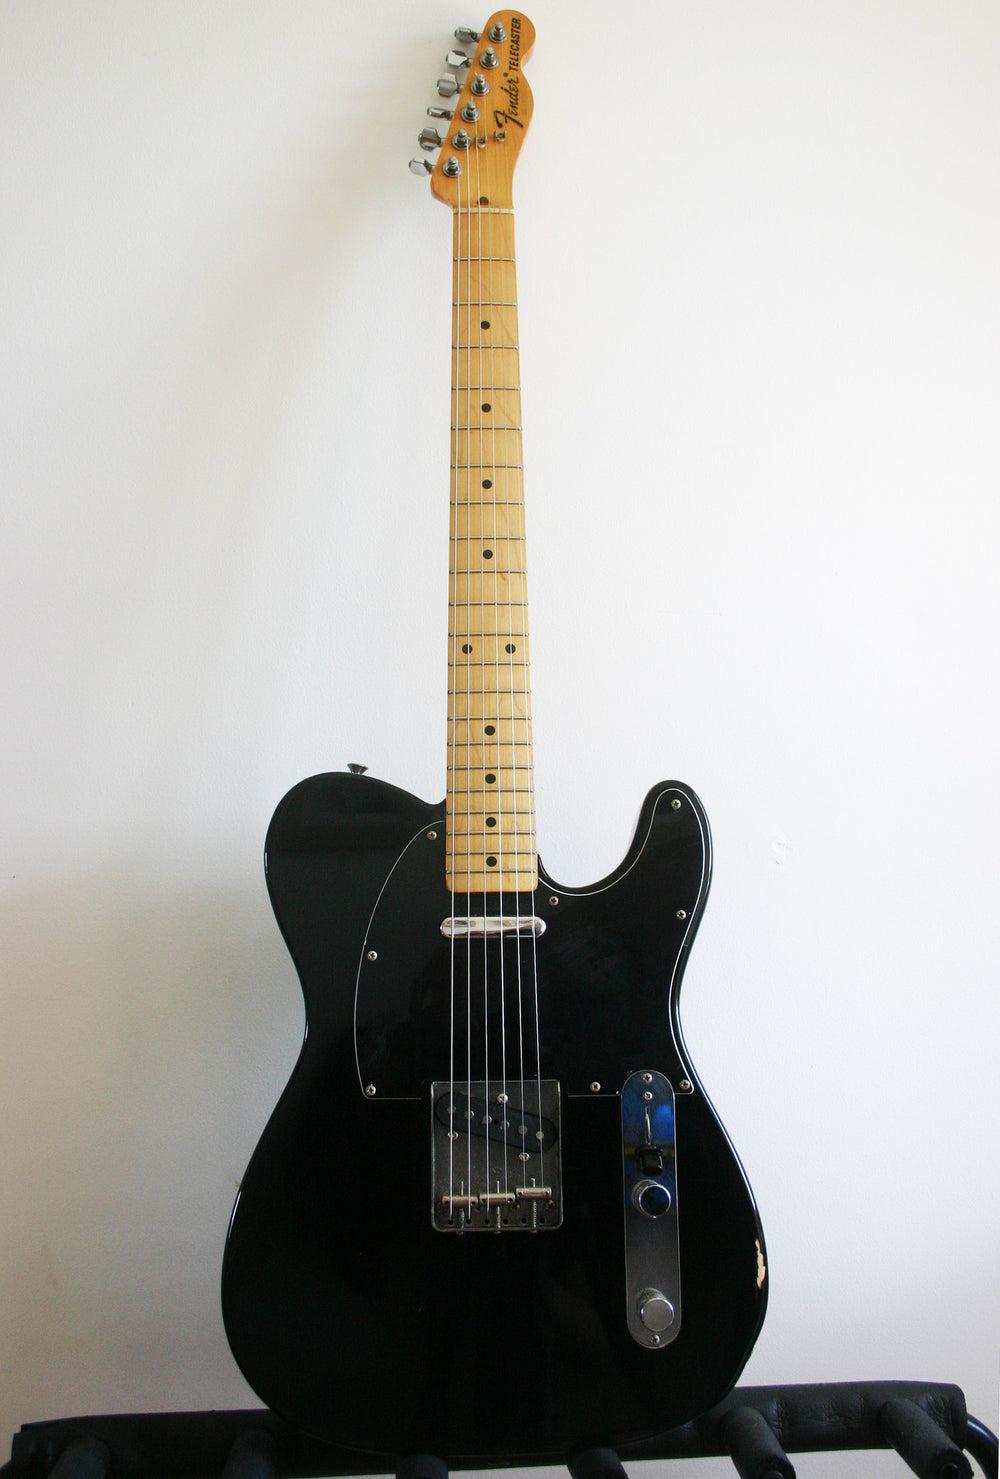 Used Fender Telecaster '72 Reissue black-on-black 1984-87